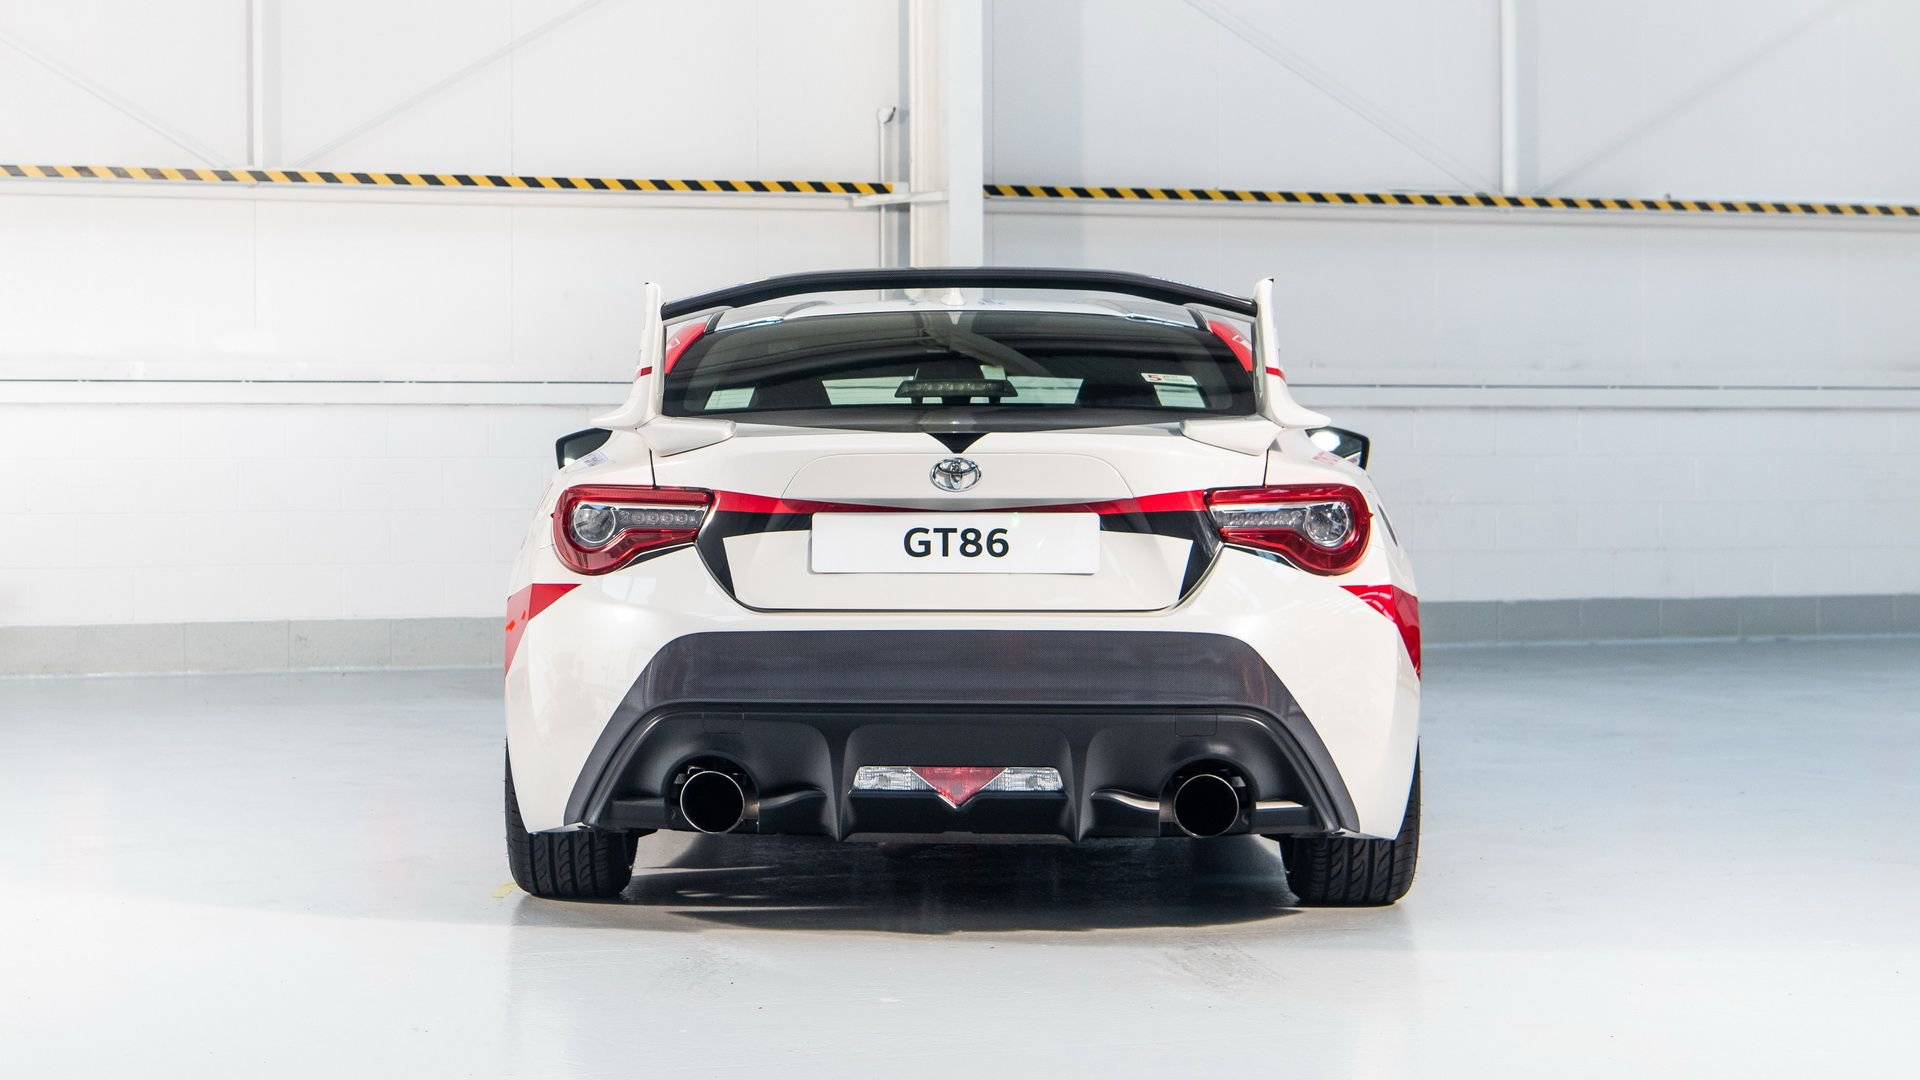 toyota-gt86-heritage-livery-24-hours-of-le-mans-11